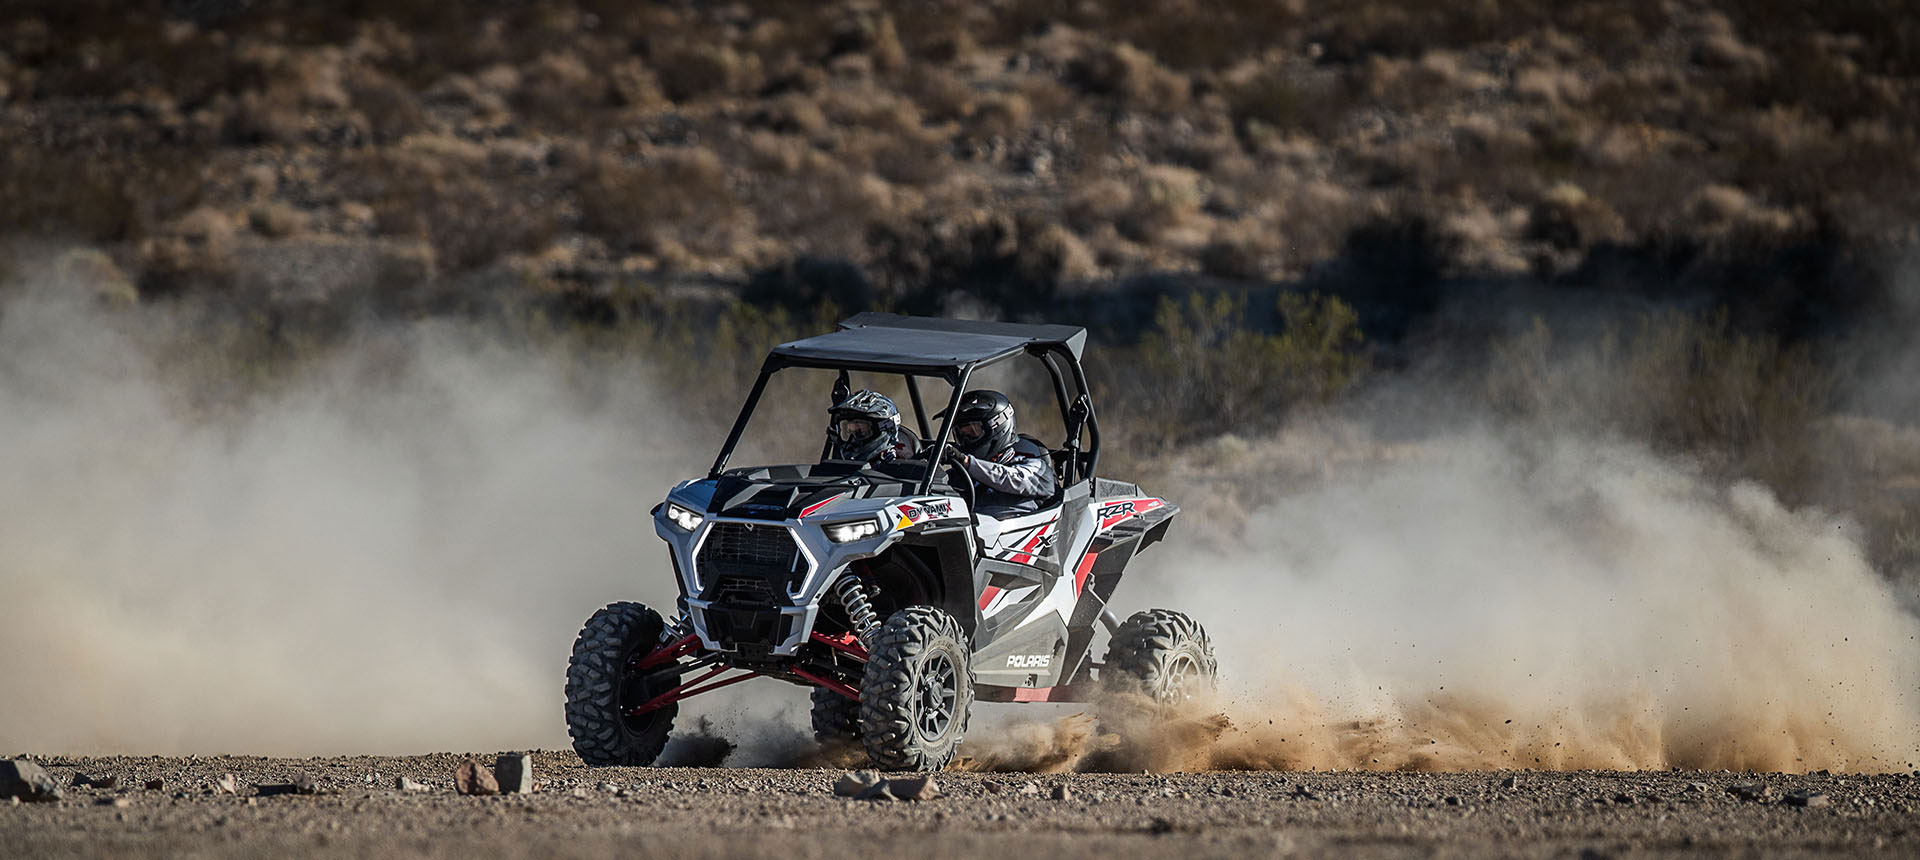 2019 Polaris RZR XP 1000 in Yuba City, California - Photo 7